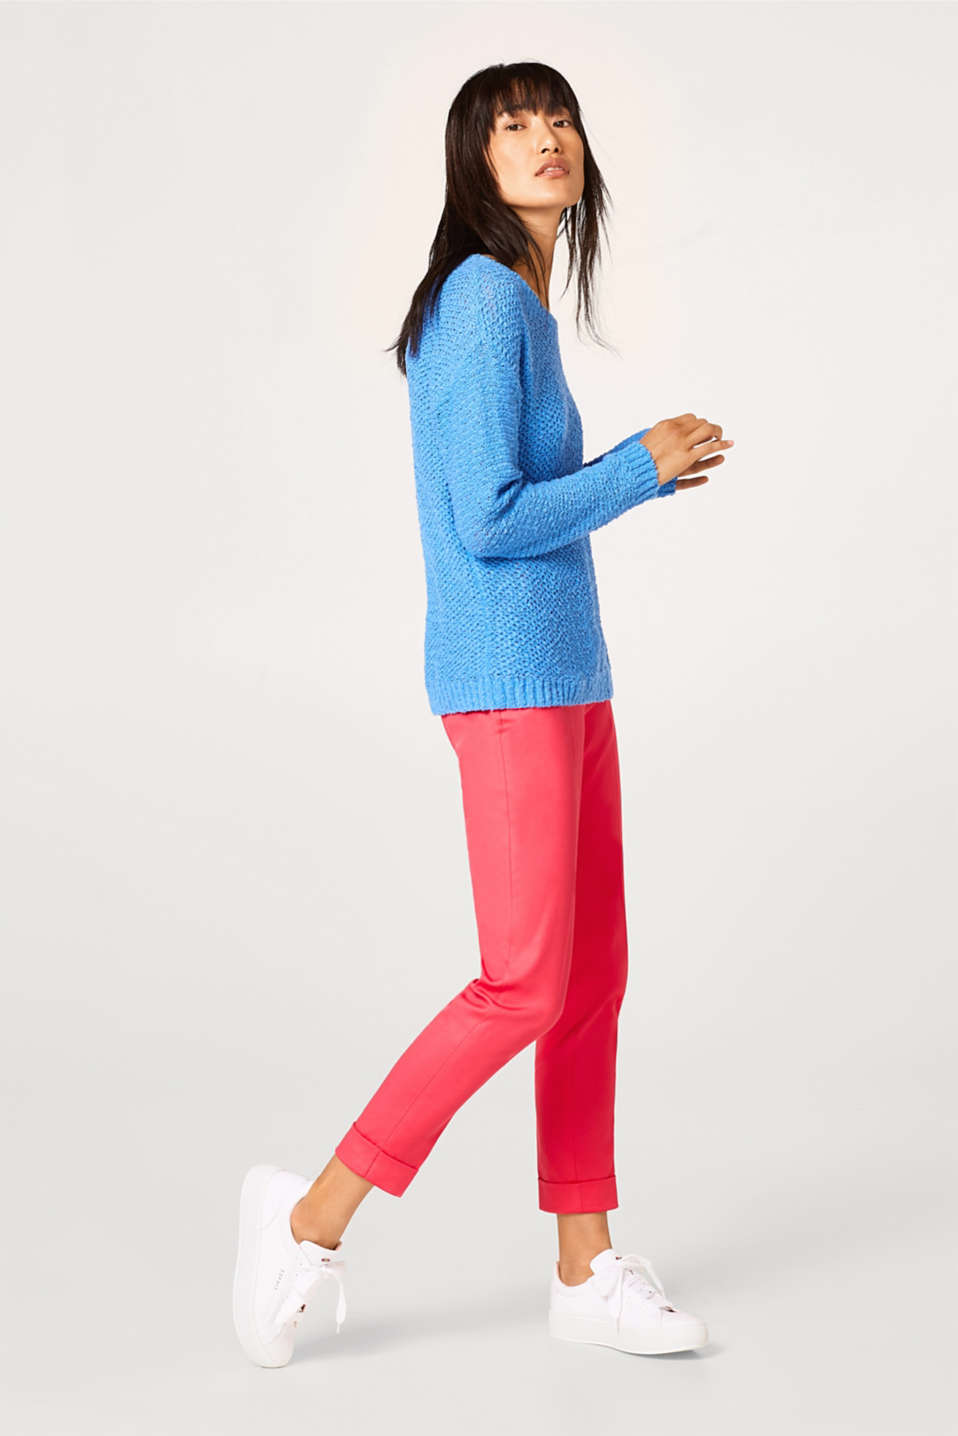 Bouclé jumper in great trend colours